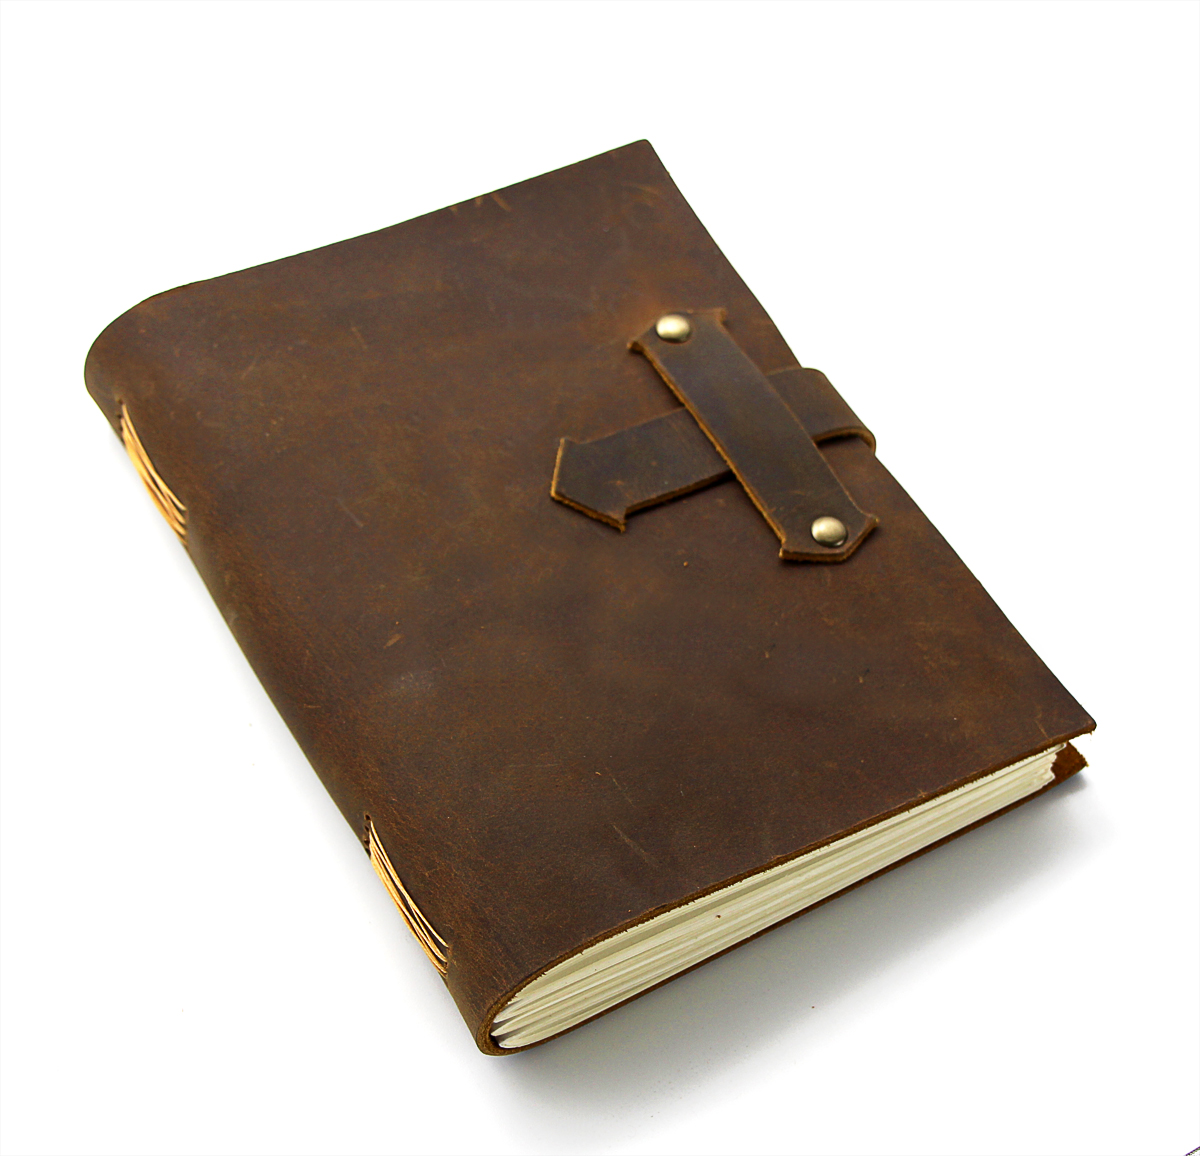 Junetree handmade Traveler s Note Book notebook brown Genuine Leather Cowhide leather diary vintage